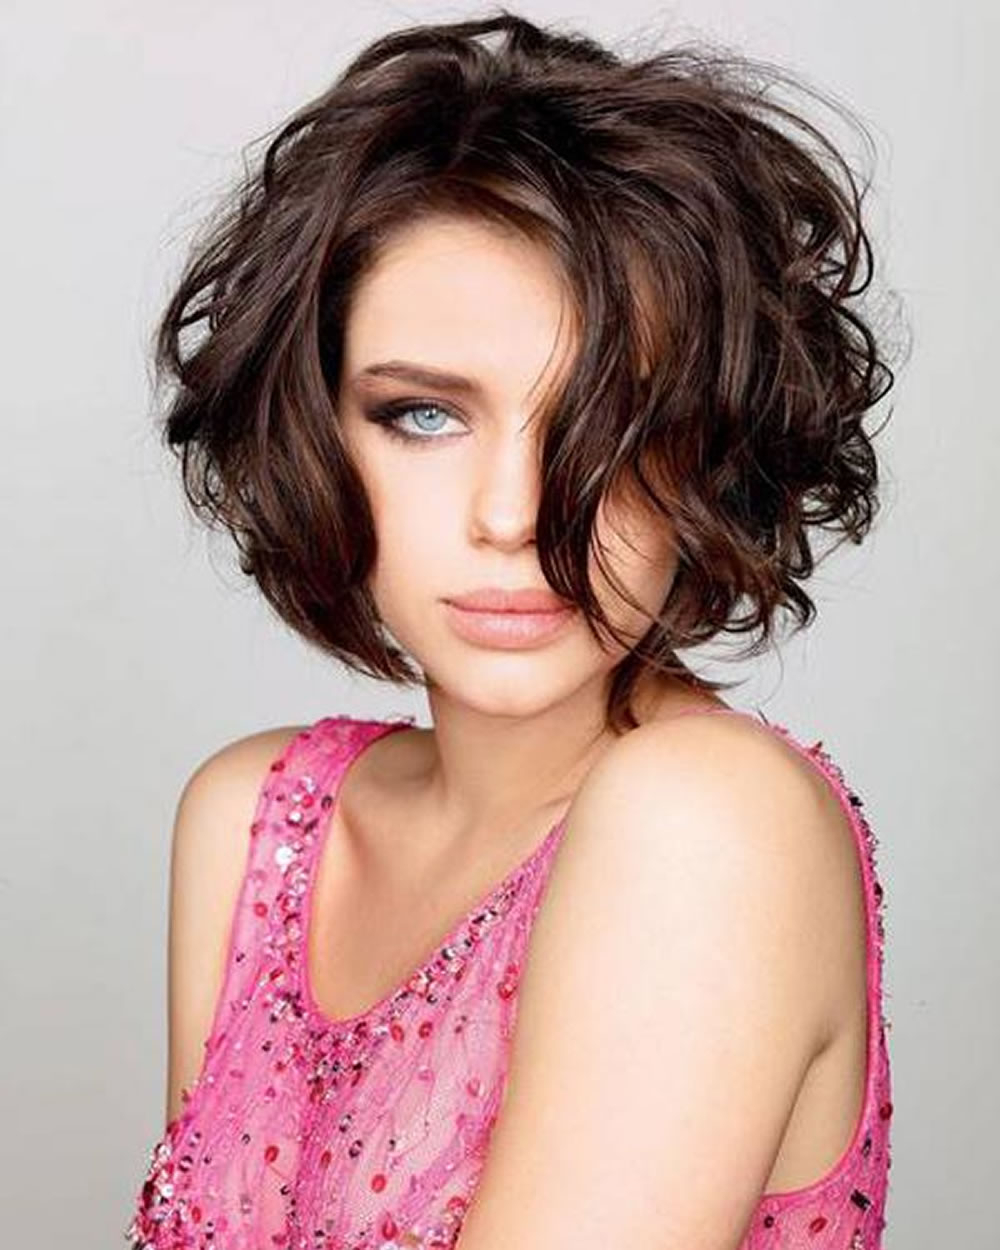 Short Hairstyles For Fine Curly Hair | Hair And Hairstyles With Short Hairstyles For Fine Curly Hair (View 24 of 25)